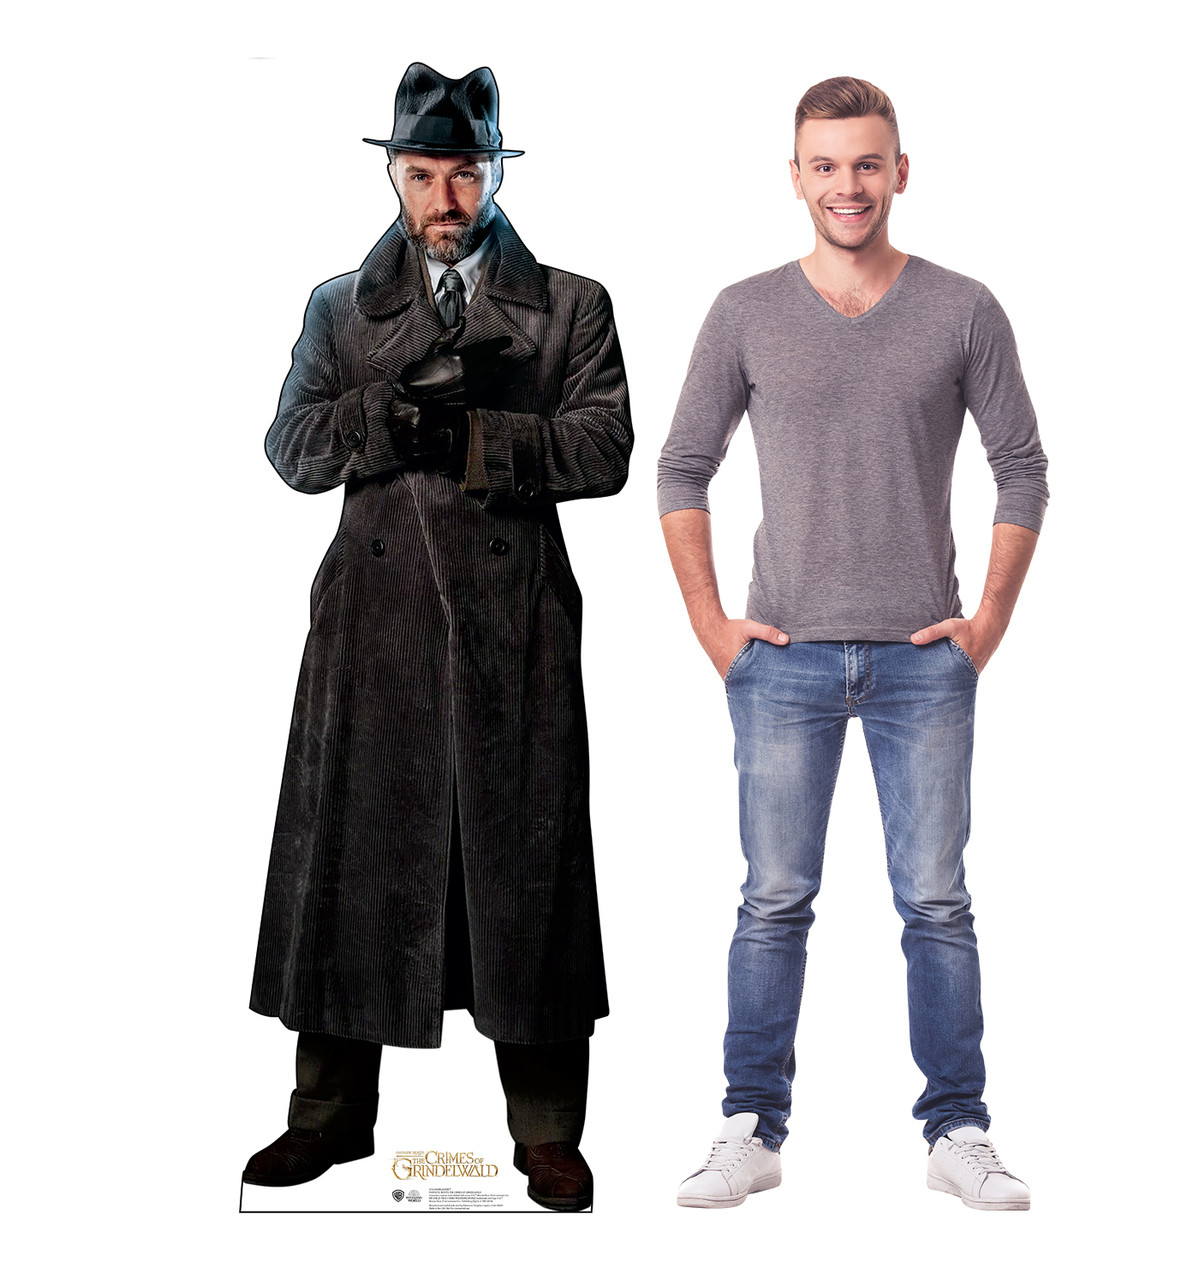 Dumbledore Lifes-size Cardboard Standee with Model.